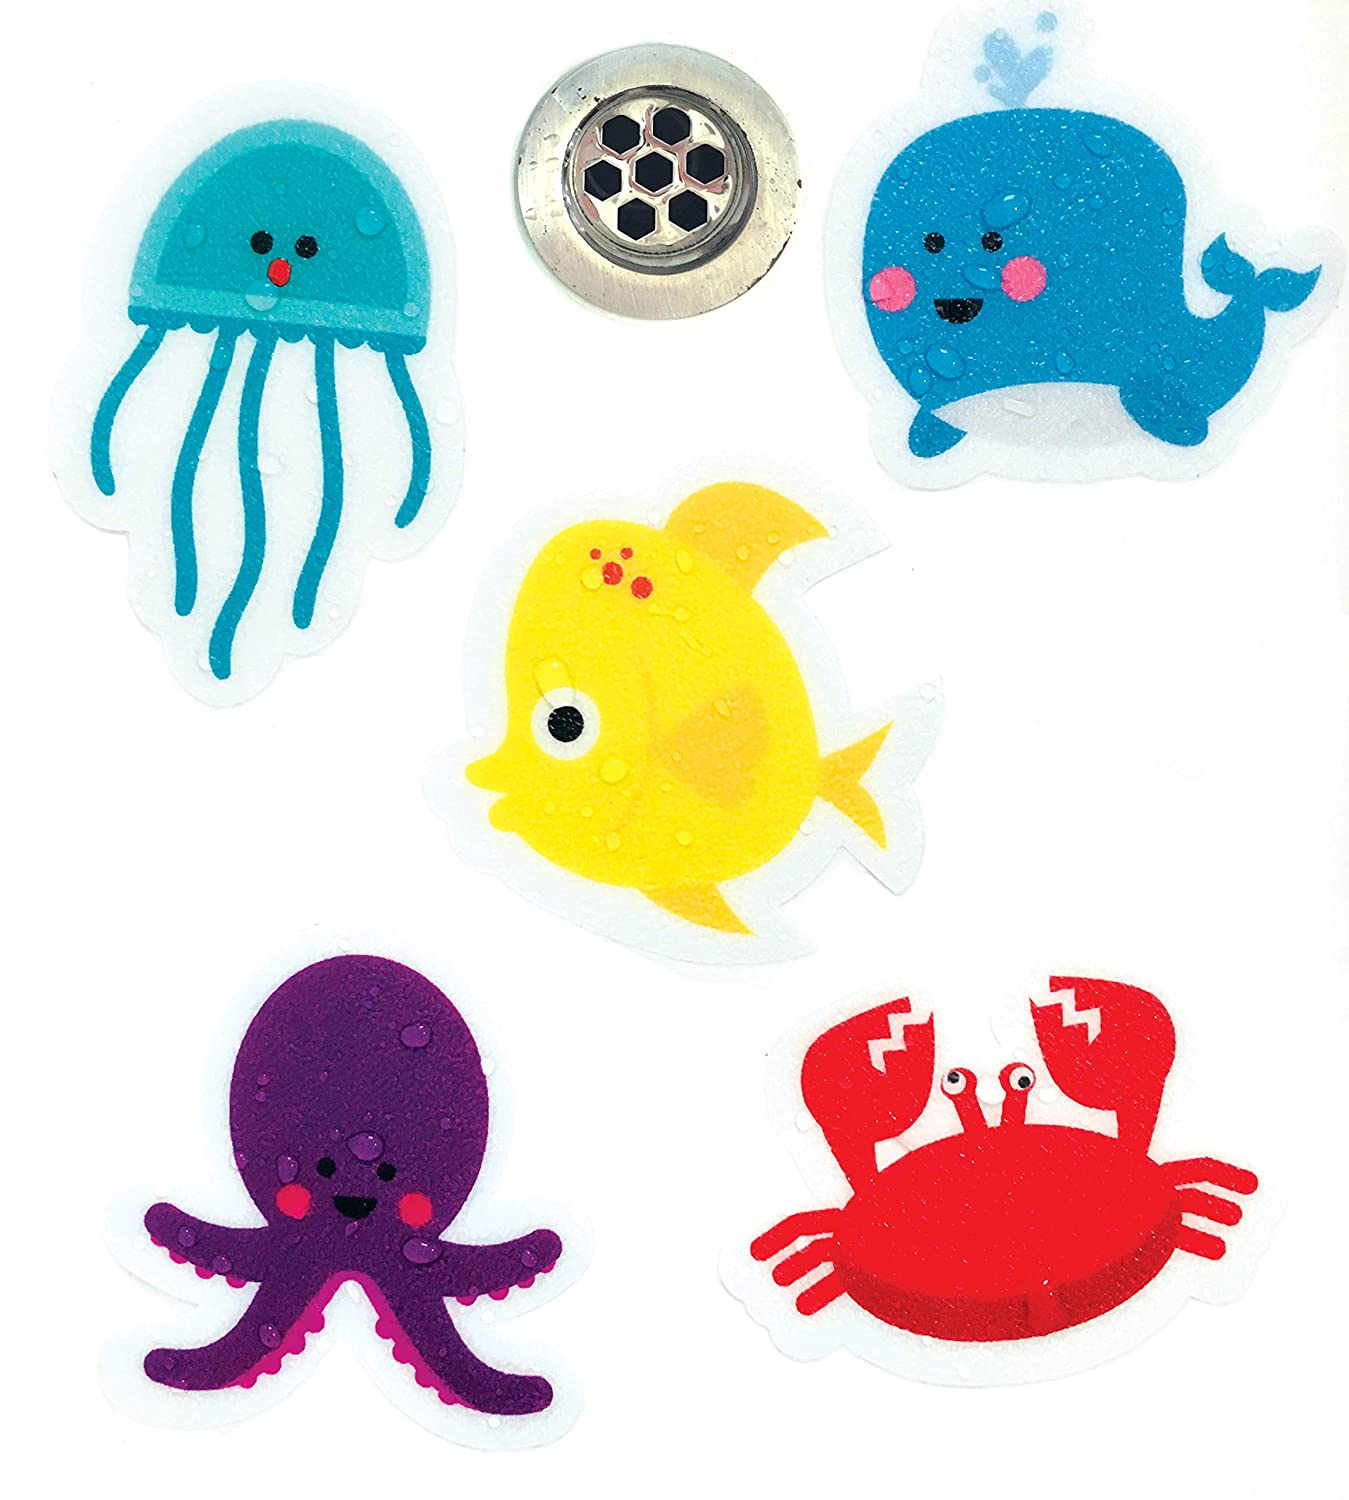 Curious Columbus Non-Slip Bathtub Stickers. Pack of 10 Large Sea Creature Decal Treads. Best Adhesive Safety Anti-Slip Appliques for Bath Tub and Shower Surfaces Little Red Shepherd